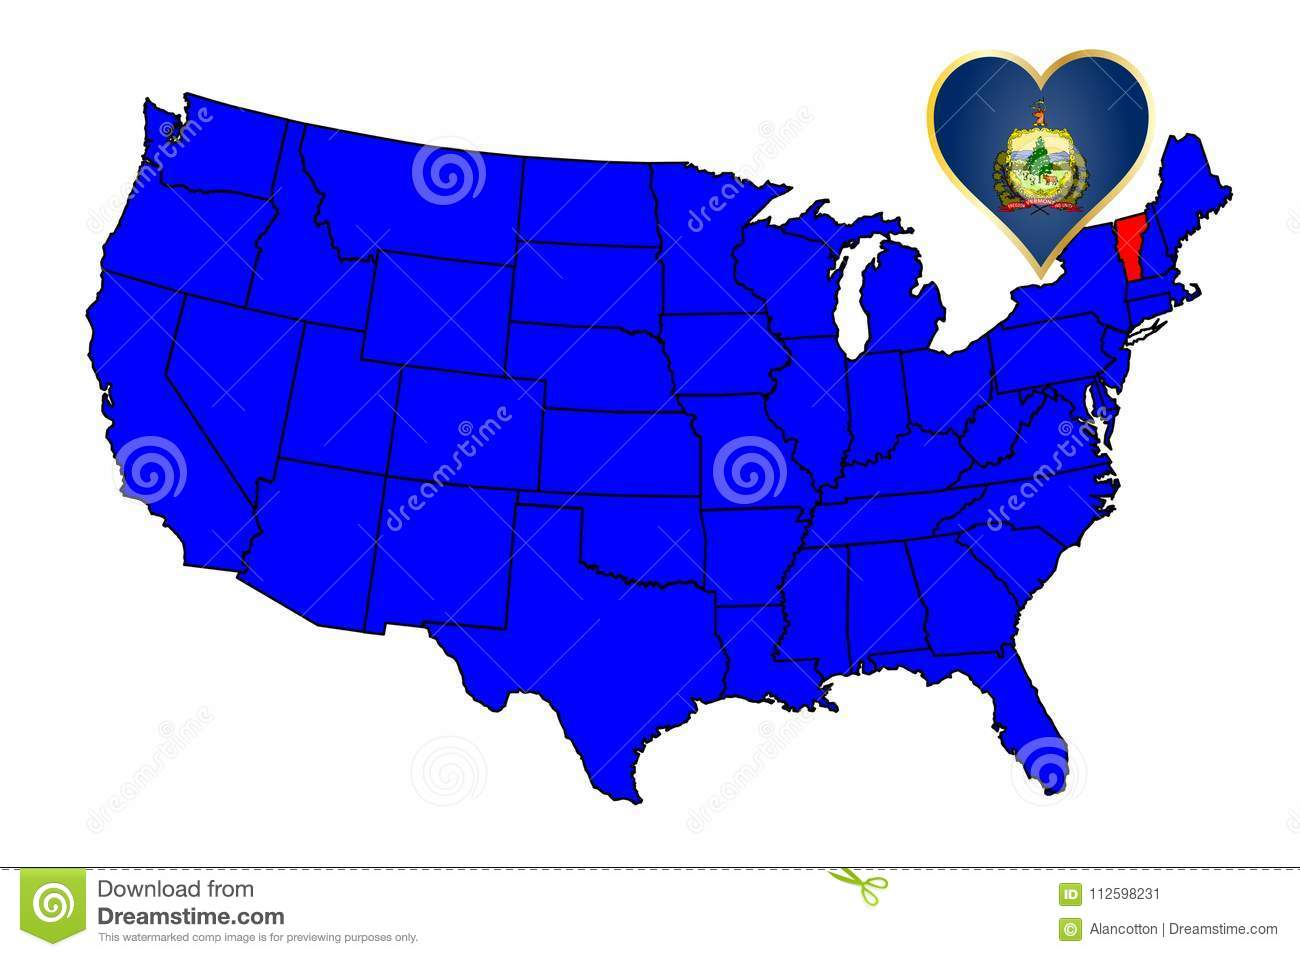 Map Of America Vermont.State Of Vermont Stock Vector Illustration Of Outline 112598231